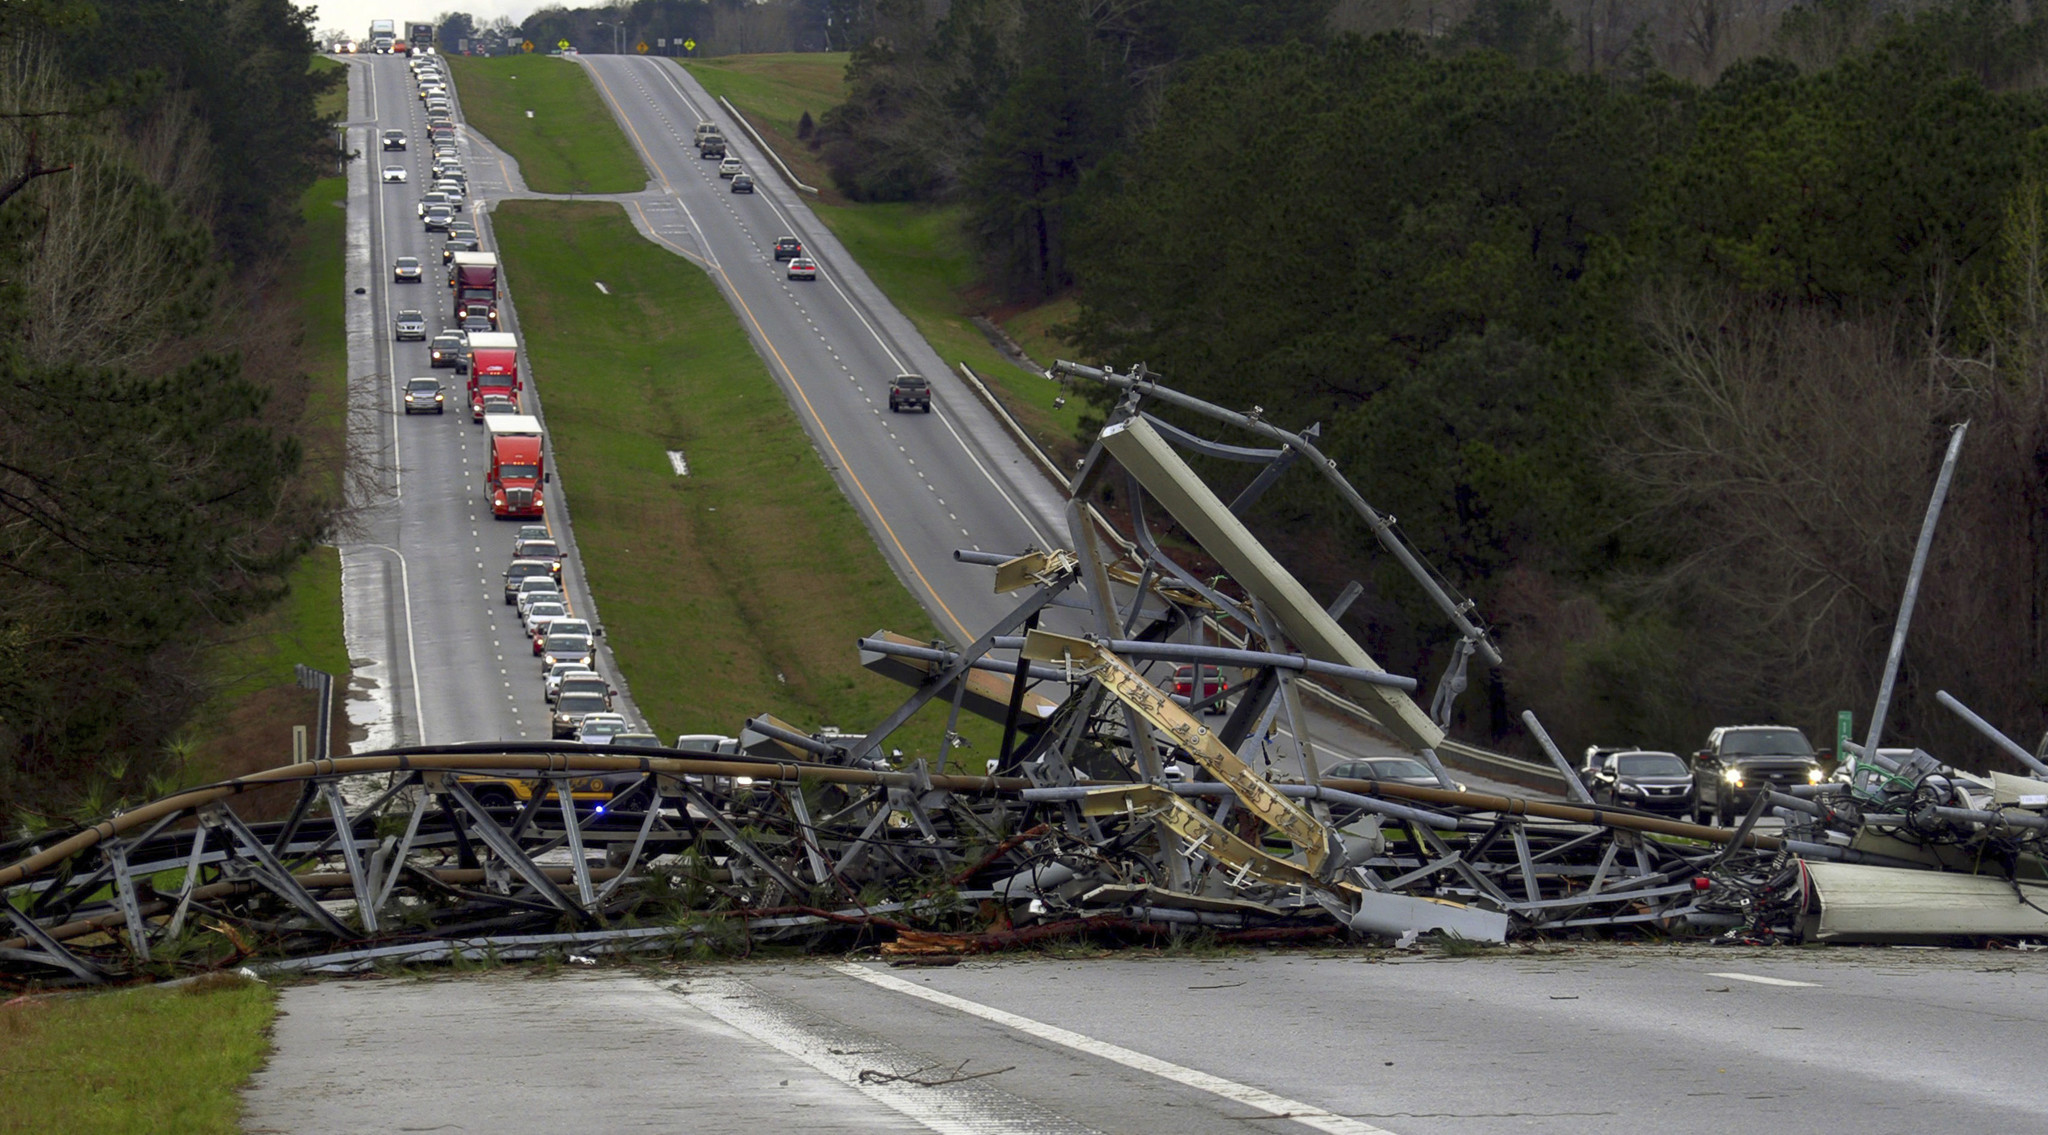 http://elpulso.hn/wp-content/uploads/2019/03/ct-alabama-south-severe-storms-tornadoes-20190303.jpg